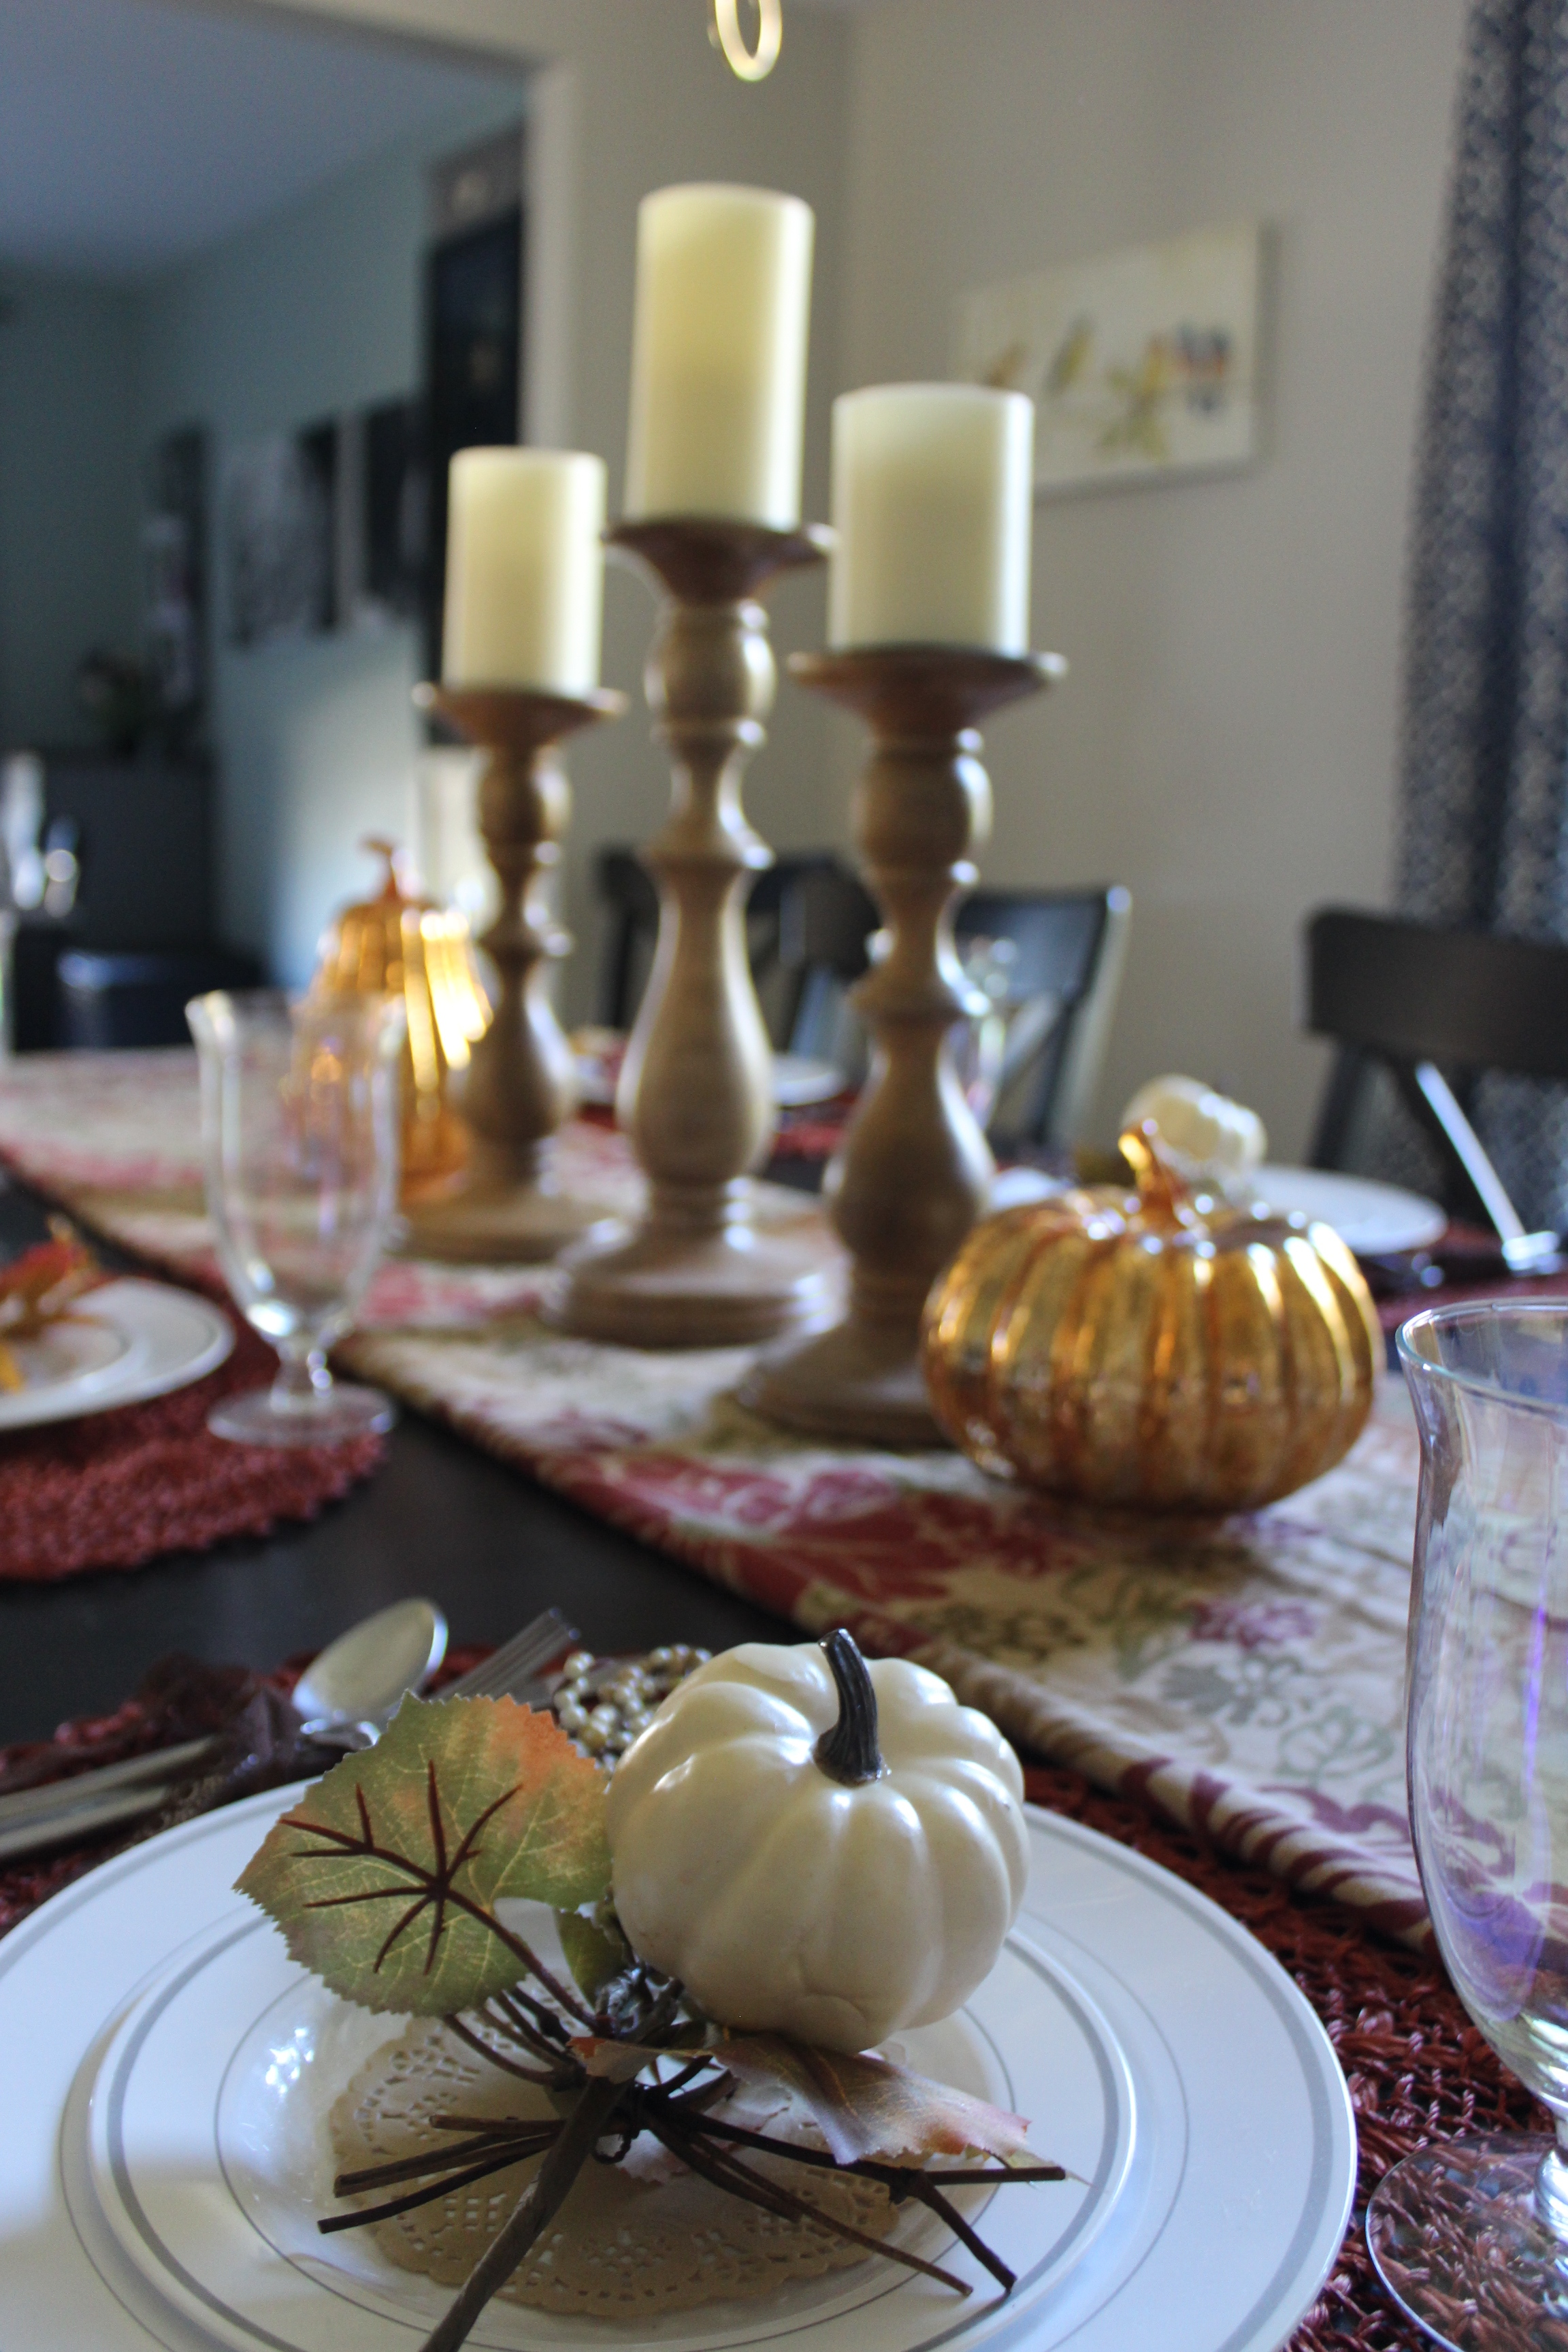 Tall candlesticks for your Thanksgiving centerpiece allow people to converse across the table.